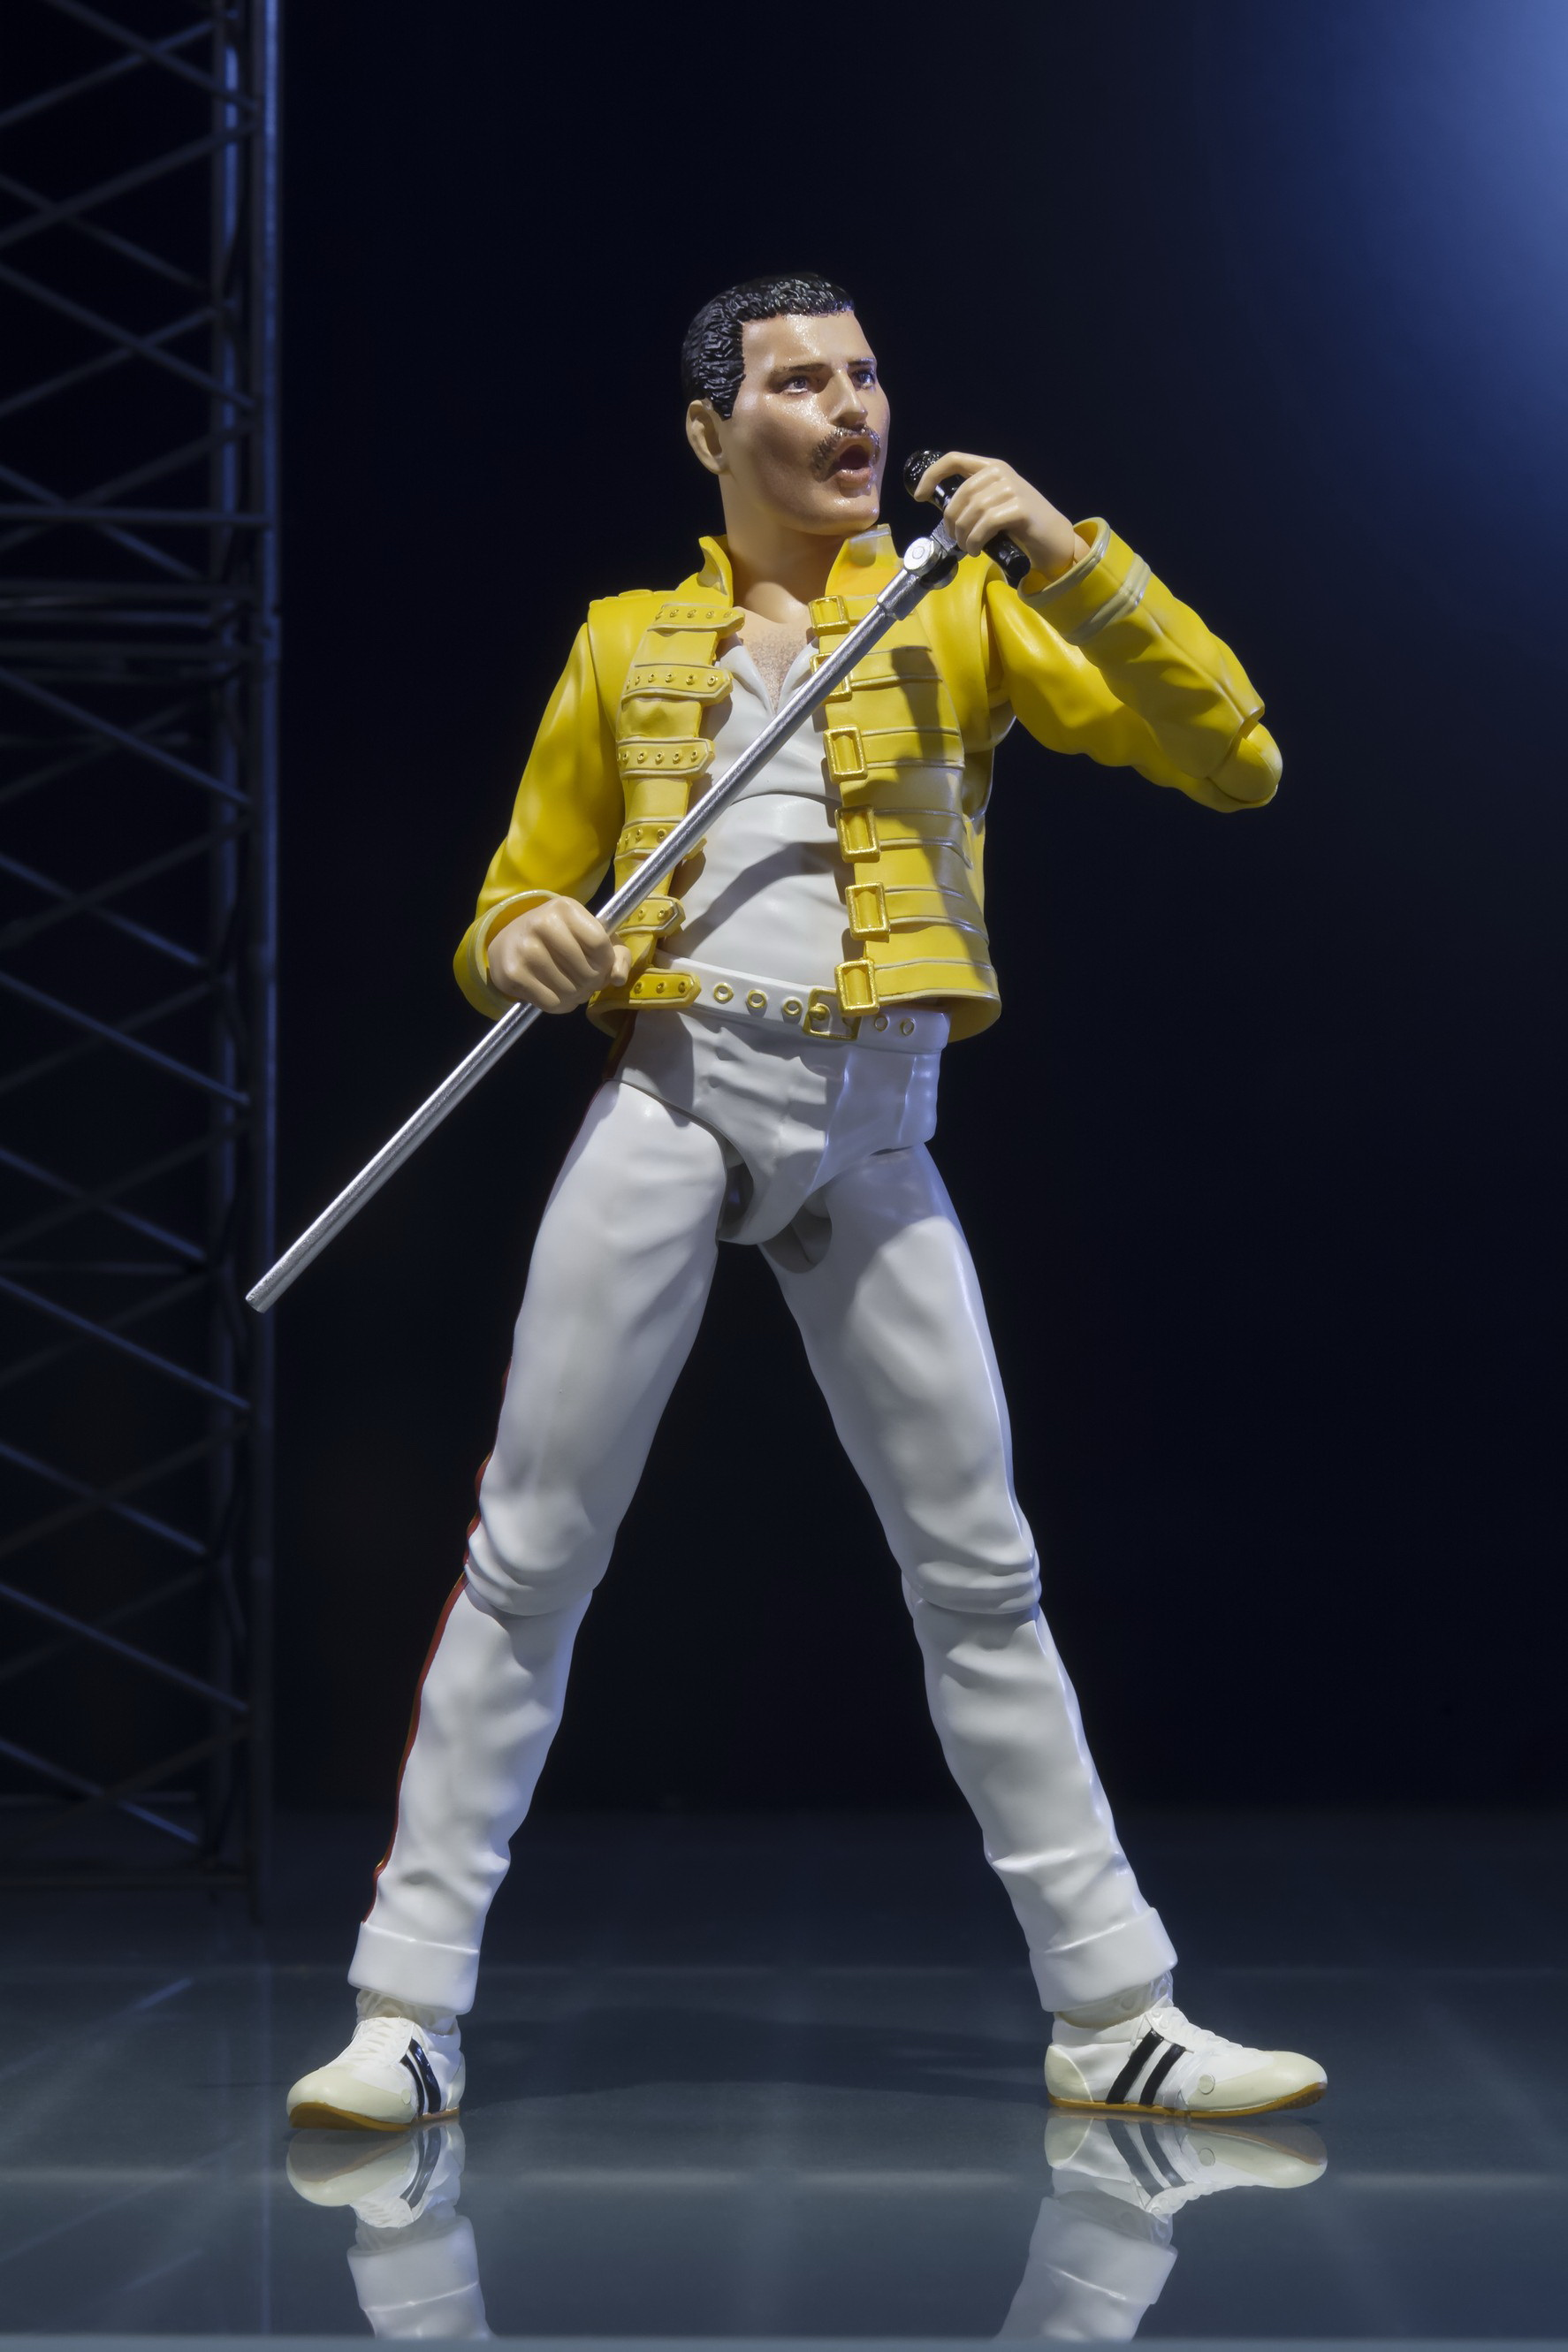 Queen's Freddie Mercury SH Figuarts - The Toyark - News